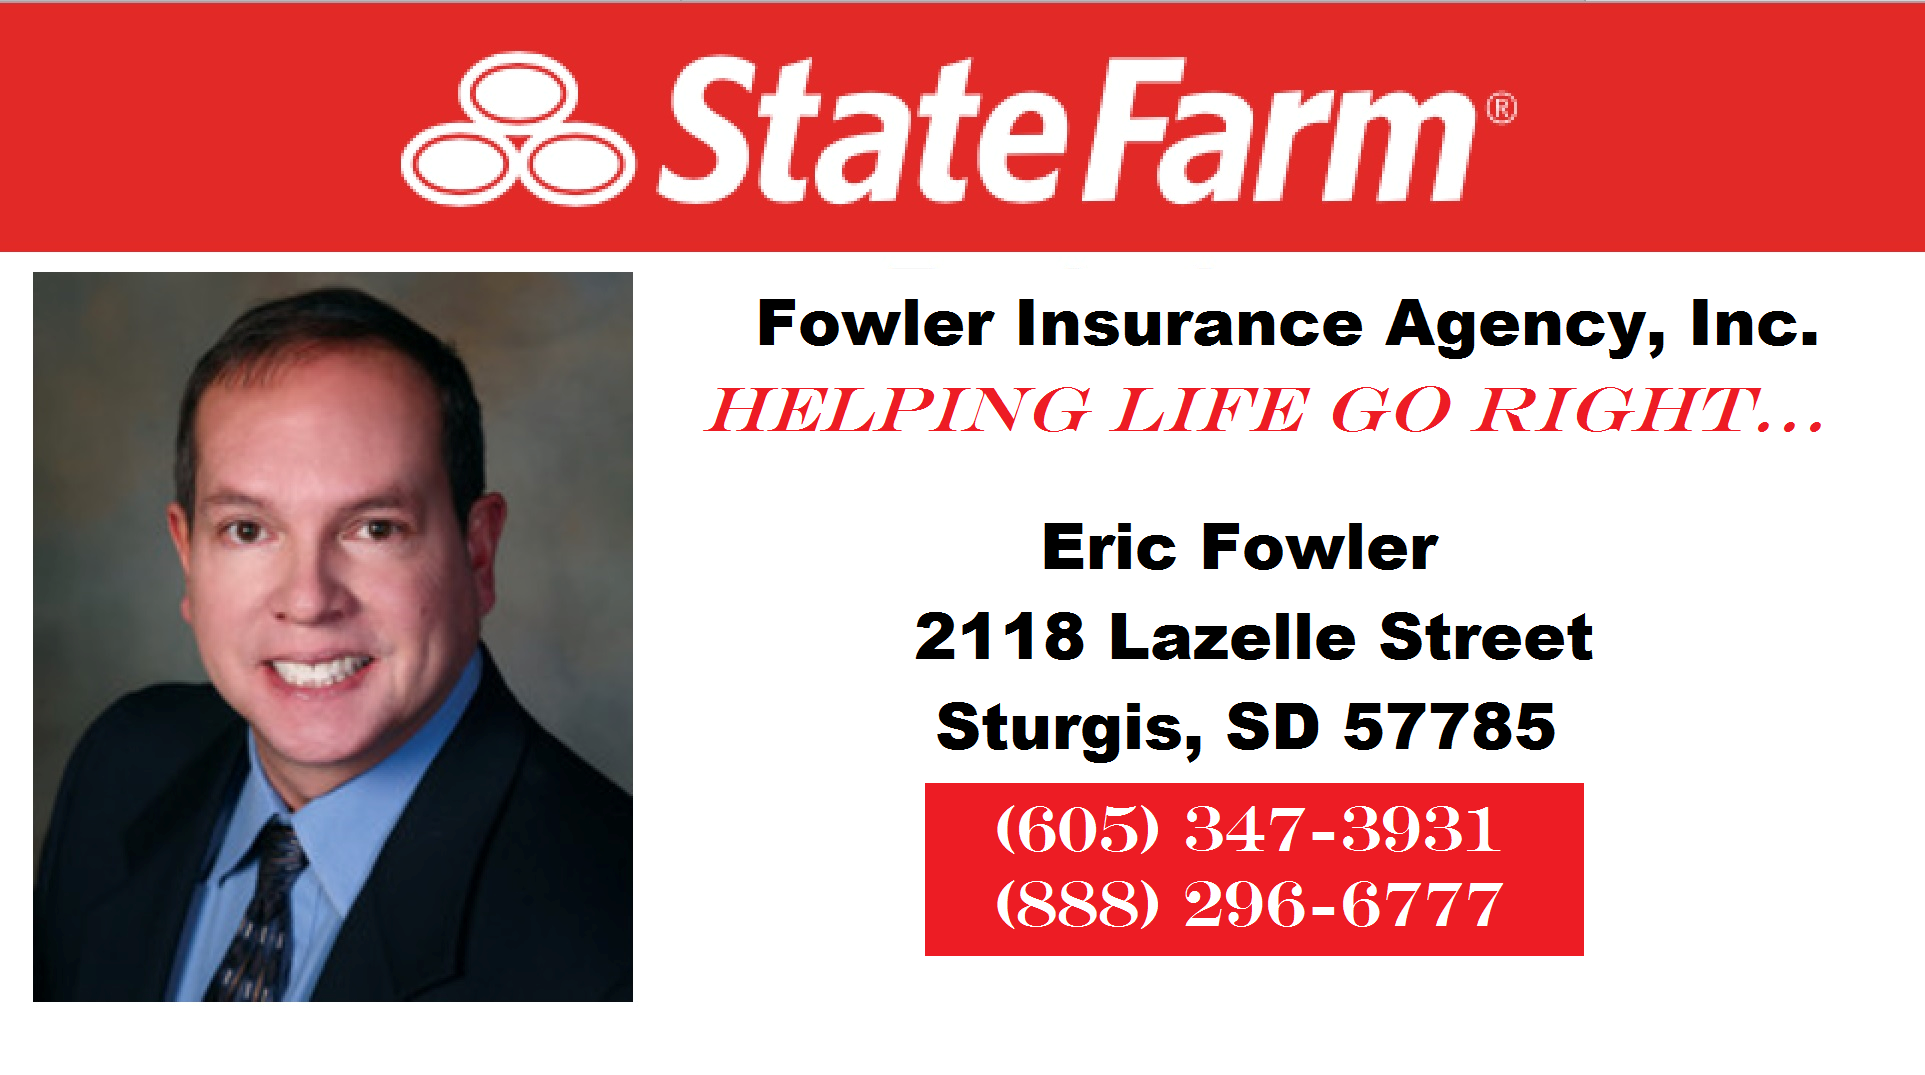 State Farm. Fowler Insurance Agency, Inc. Helping life go right... Eric Fowler. 2118 Lazelle Street Sturgis, SD 57785.